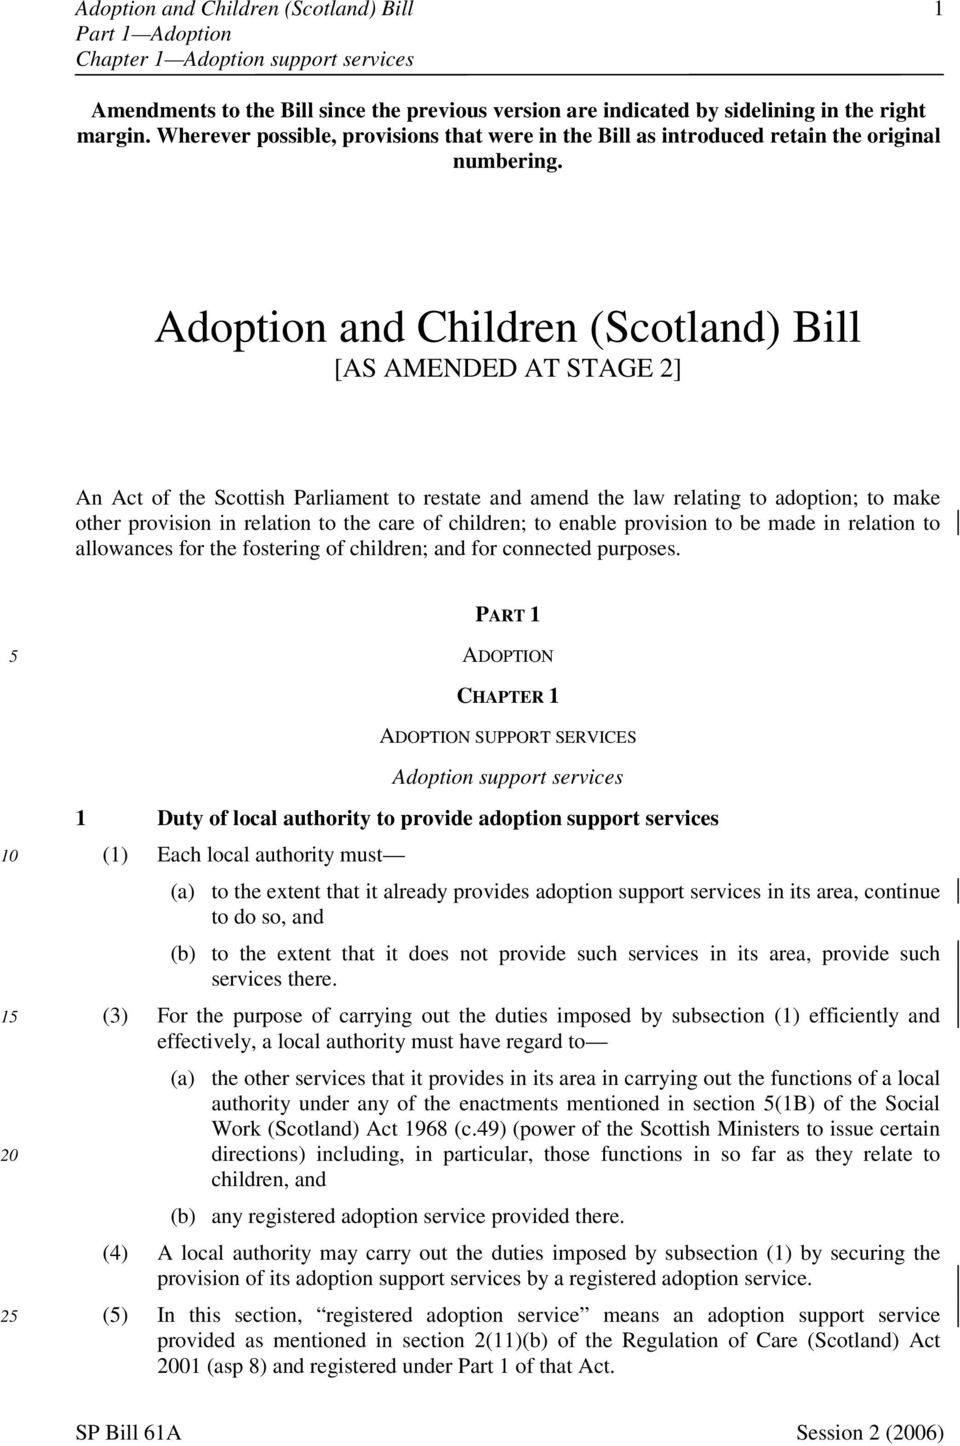 Adoption and Children (Scotland) Bill [AS AMENDED AT STAGE 2] An Act of the Scottish Parliament to restate and amend the law relating to adoption; to make other provision in relation to the care of